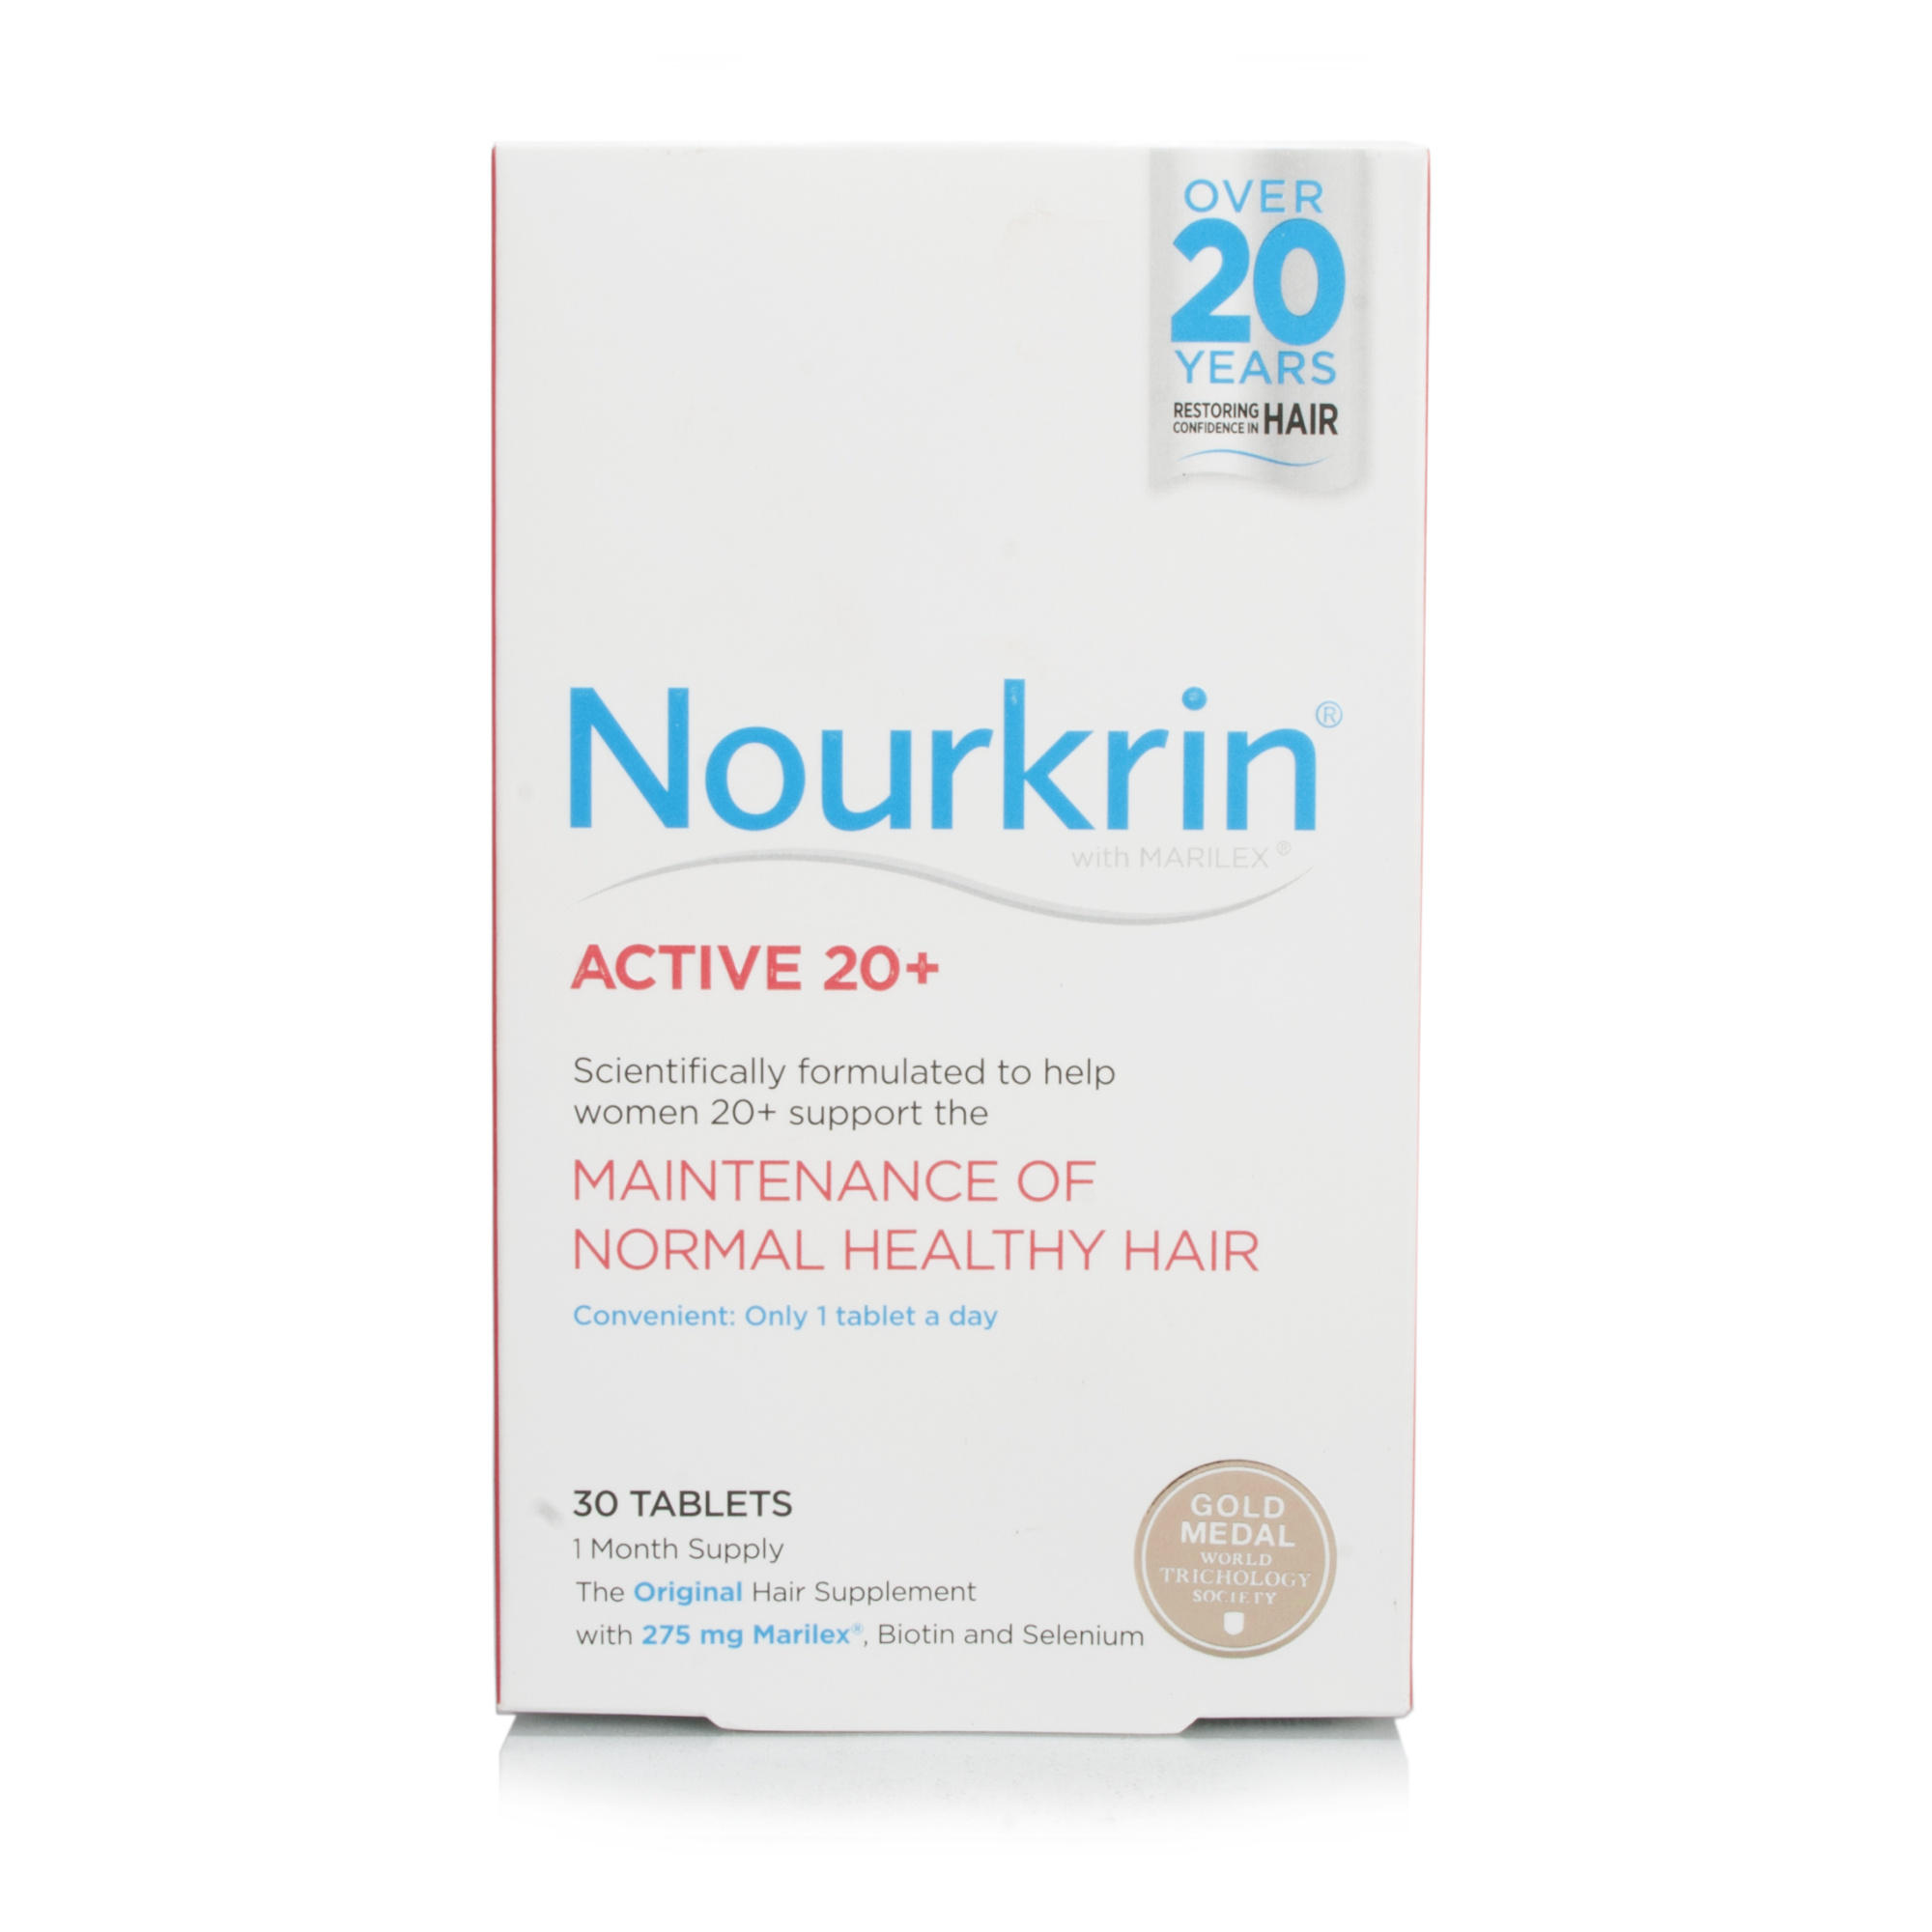 Nourkrin Active 20 1 Month Supply